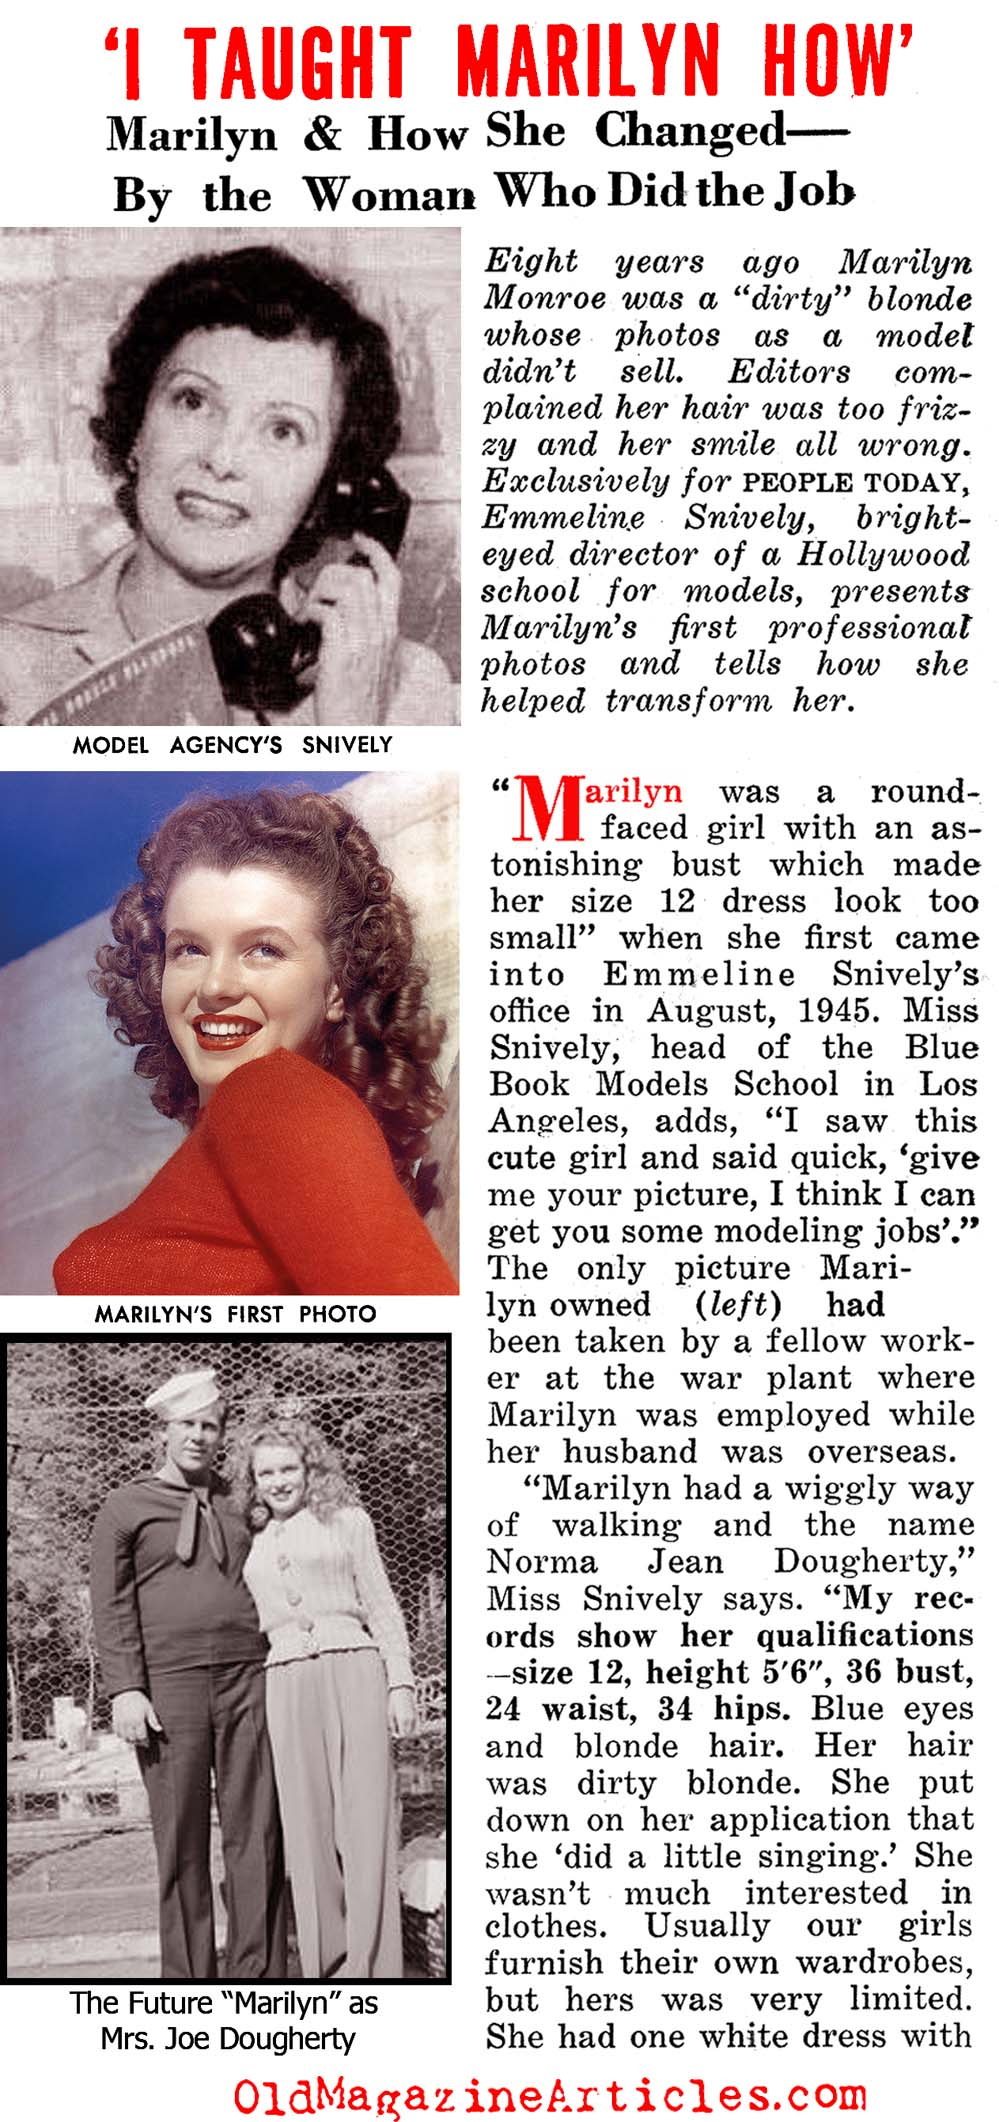 The Woman Who Created Marilyn Monroe (People Today Magazine, 1954)